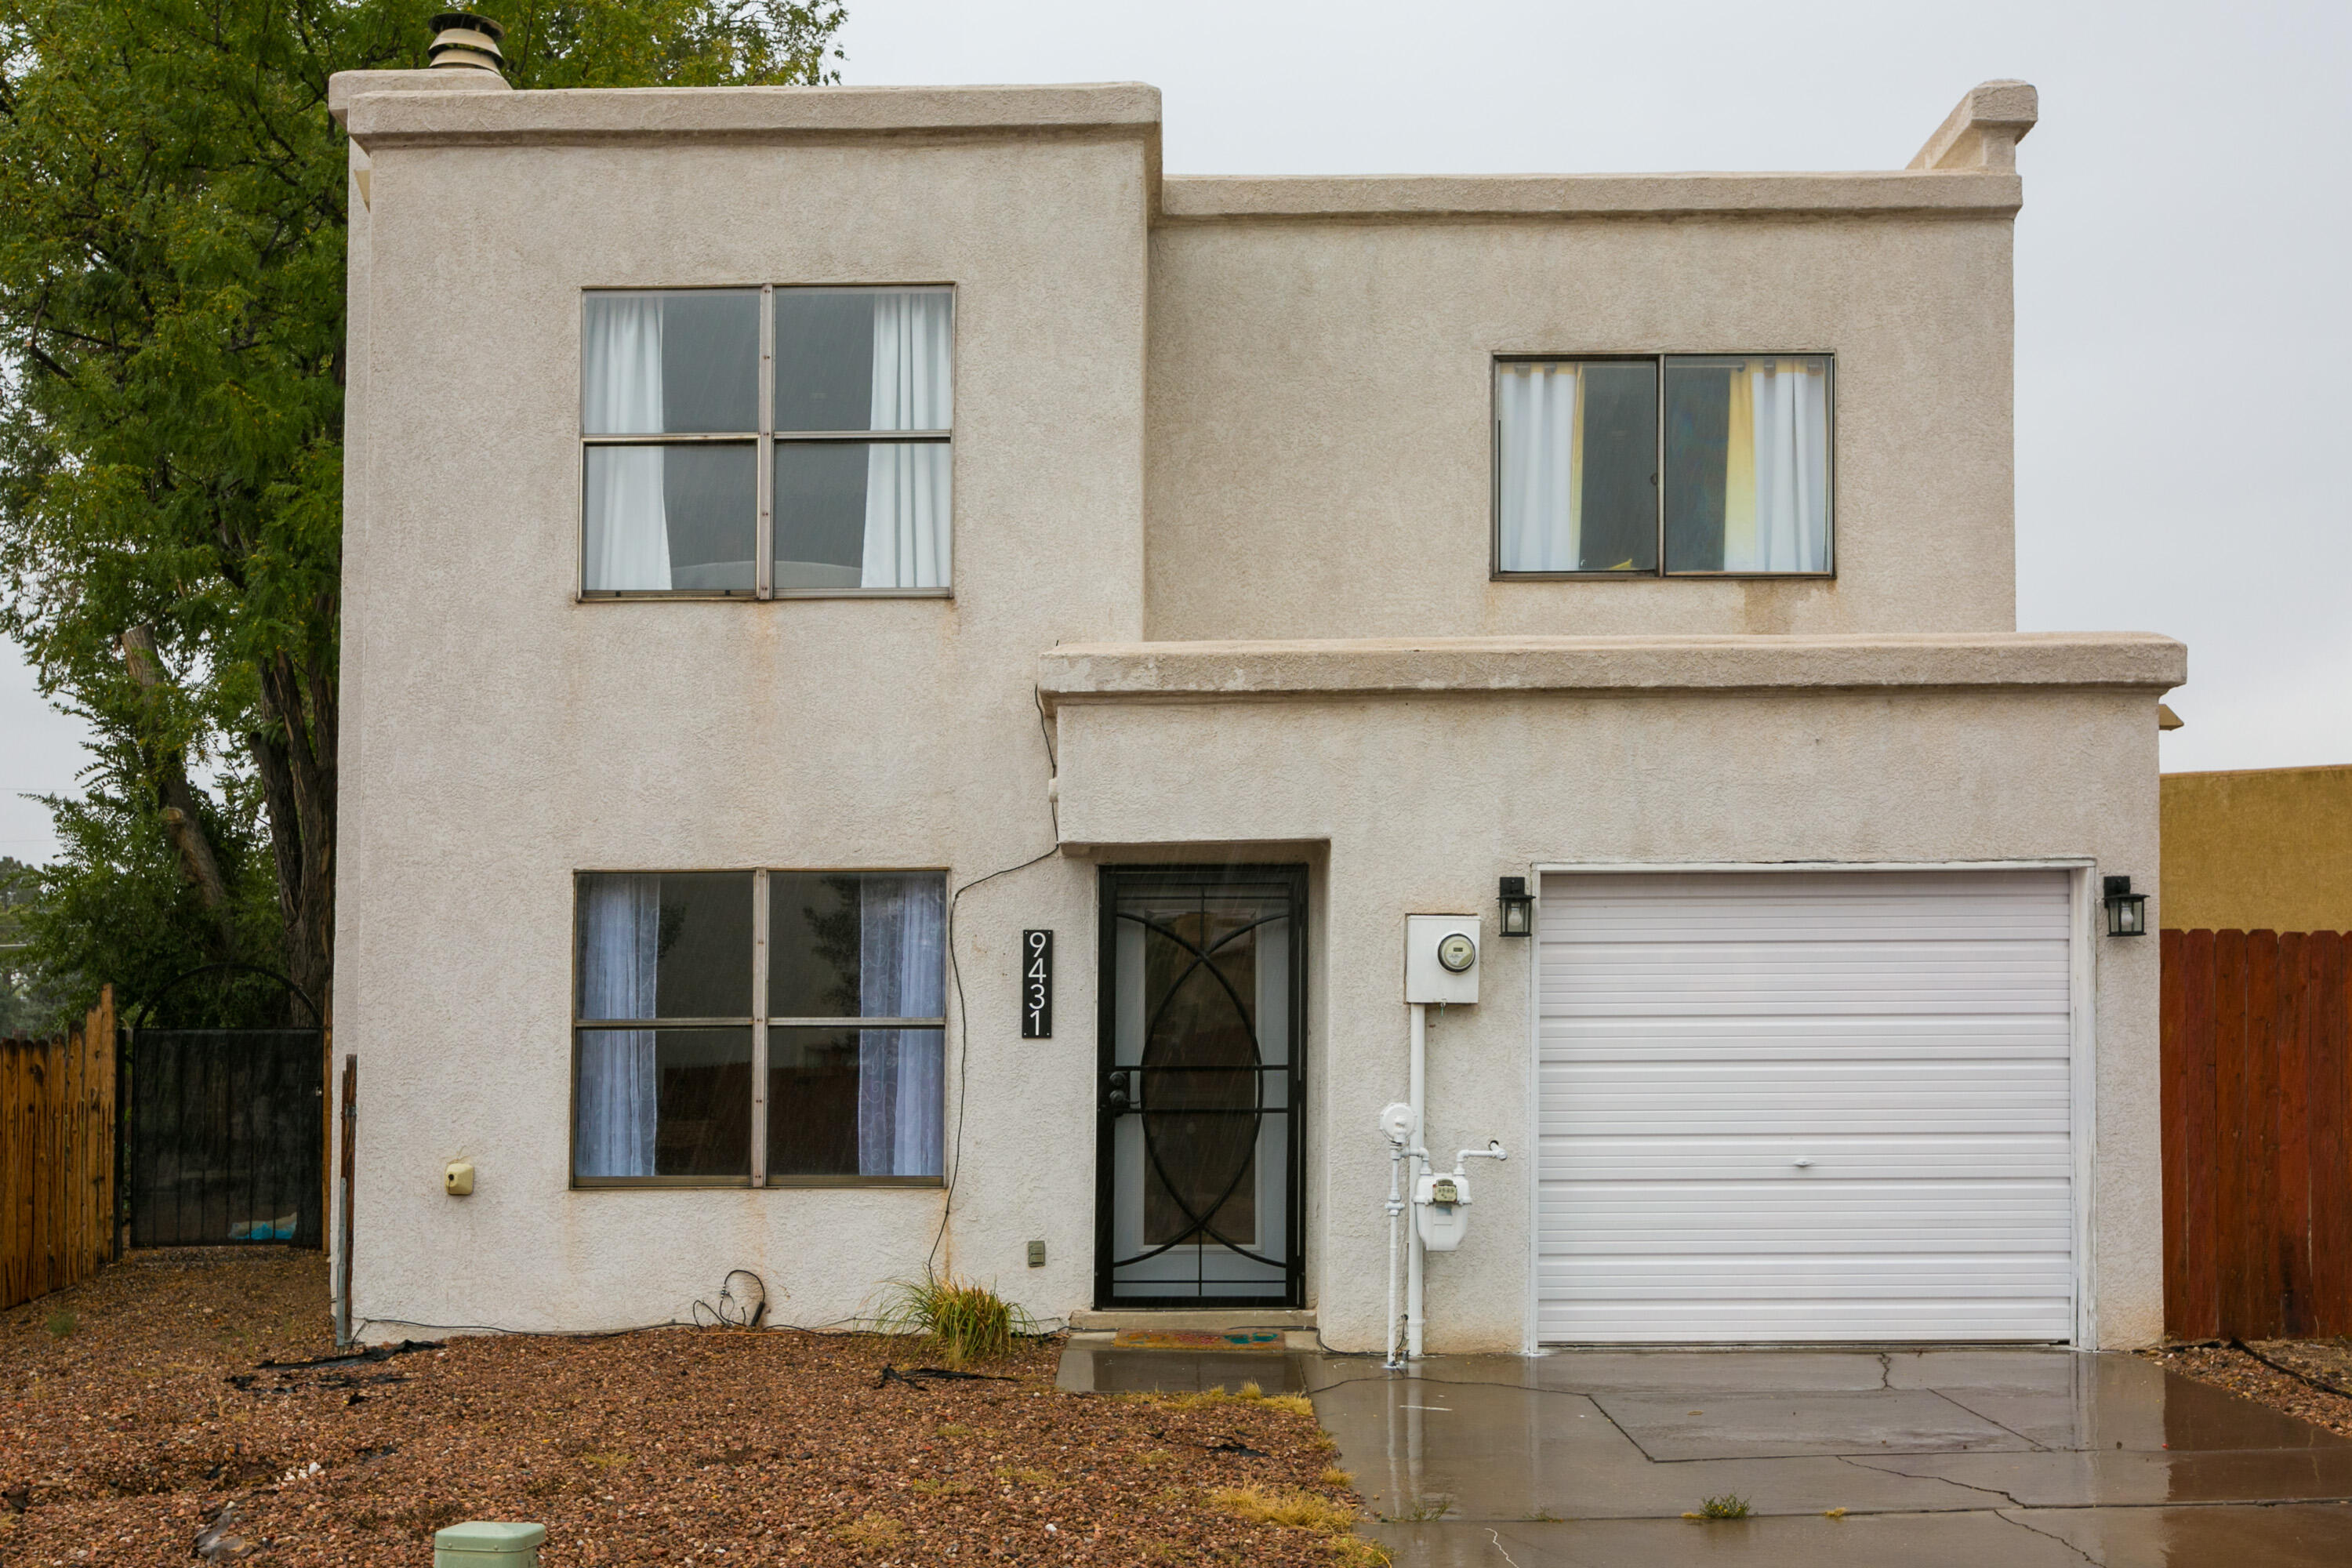 Super cute, clean and cozy 2 bed 3 bath home on a quiet street. Close to parks and shopping. Newer appliances and a fantastic back yard!